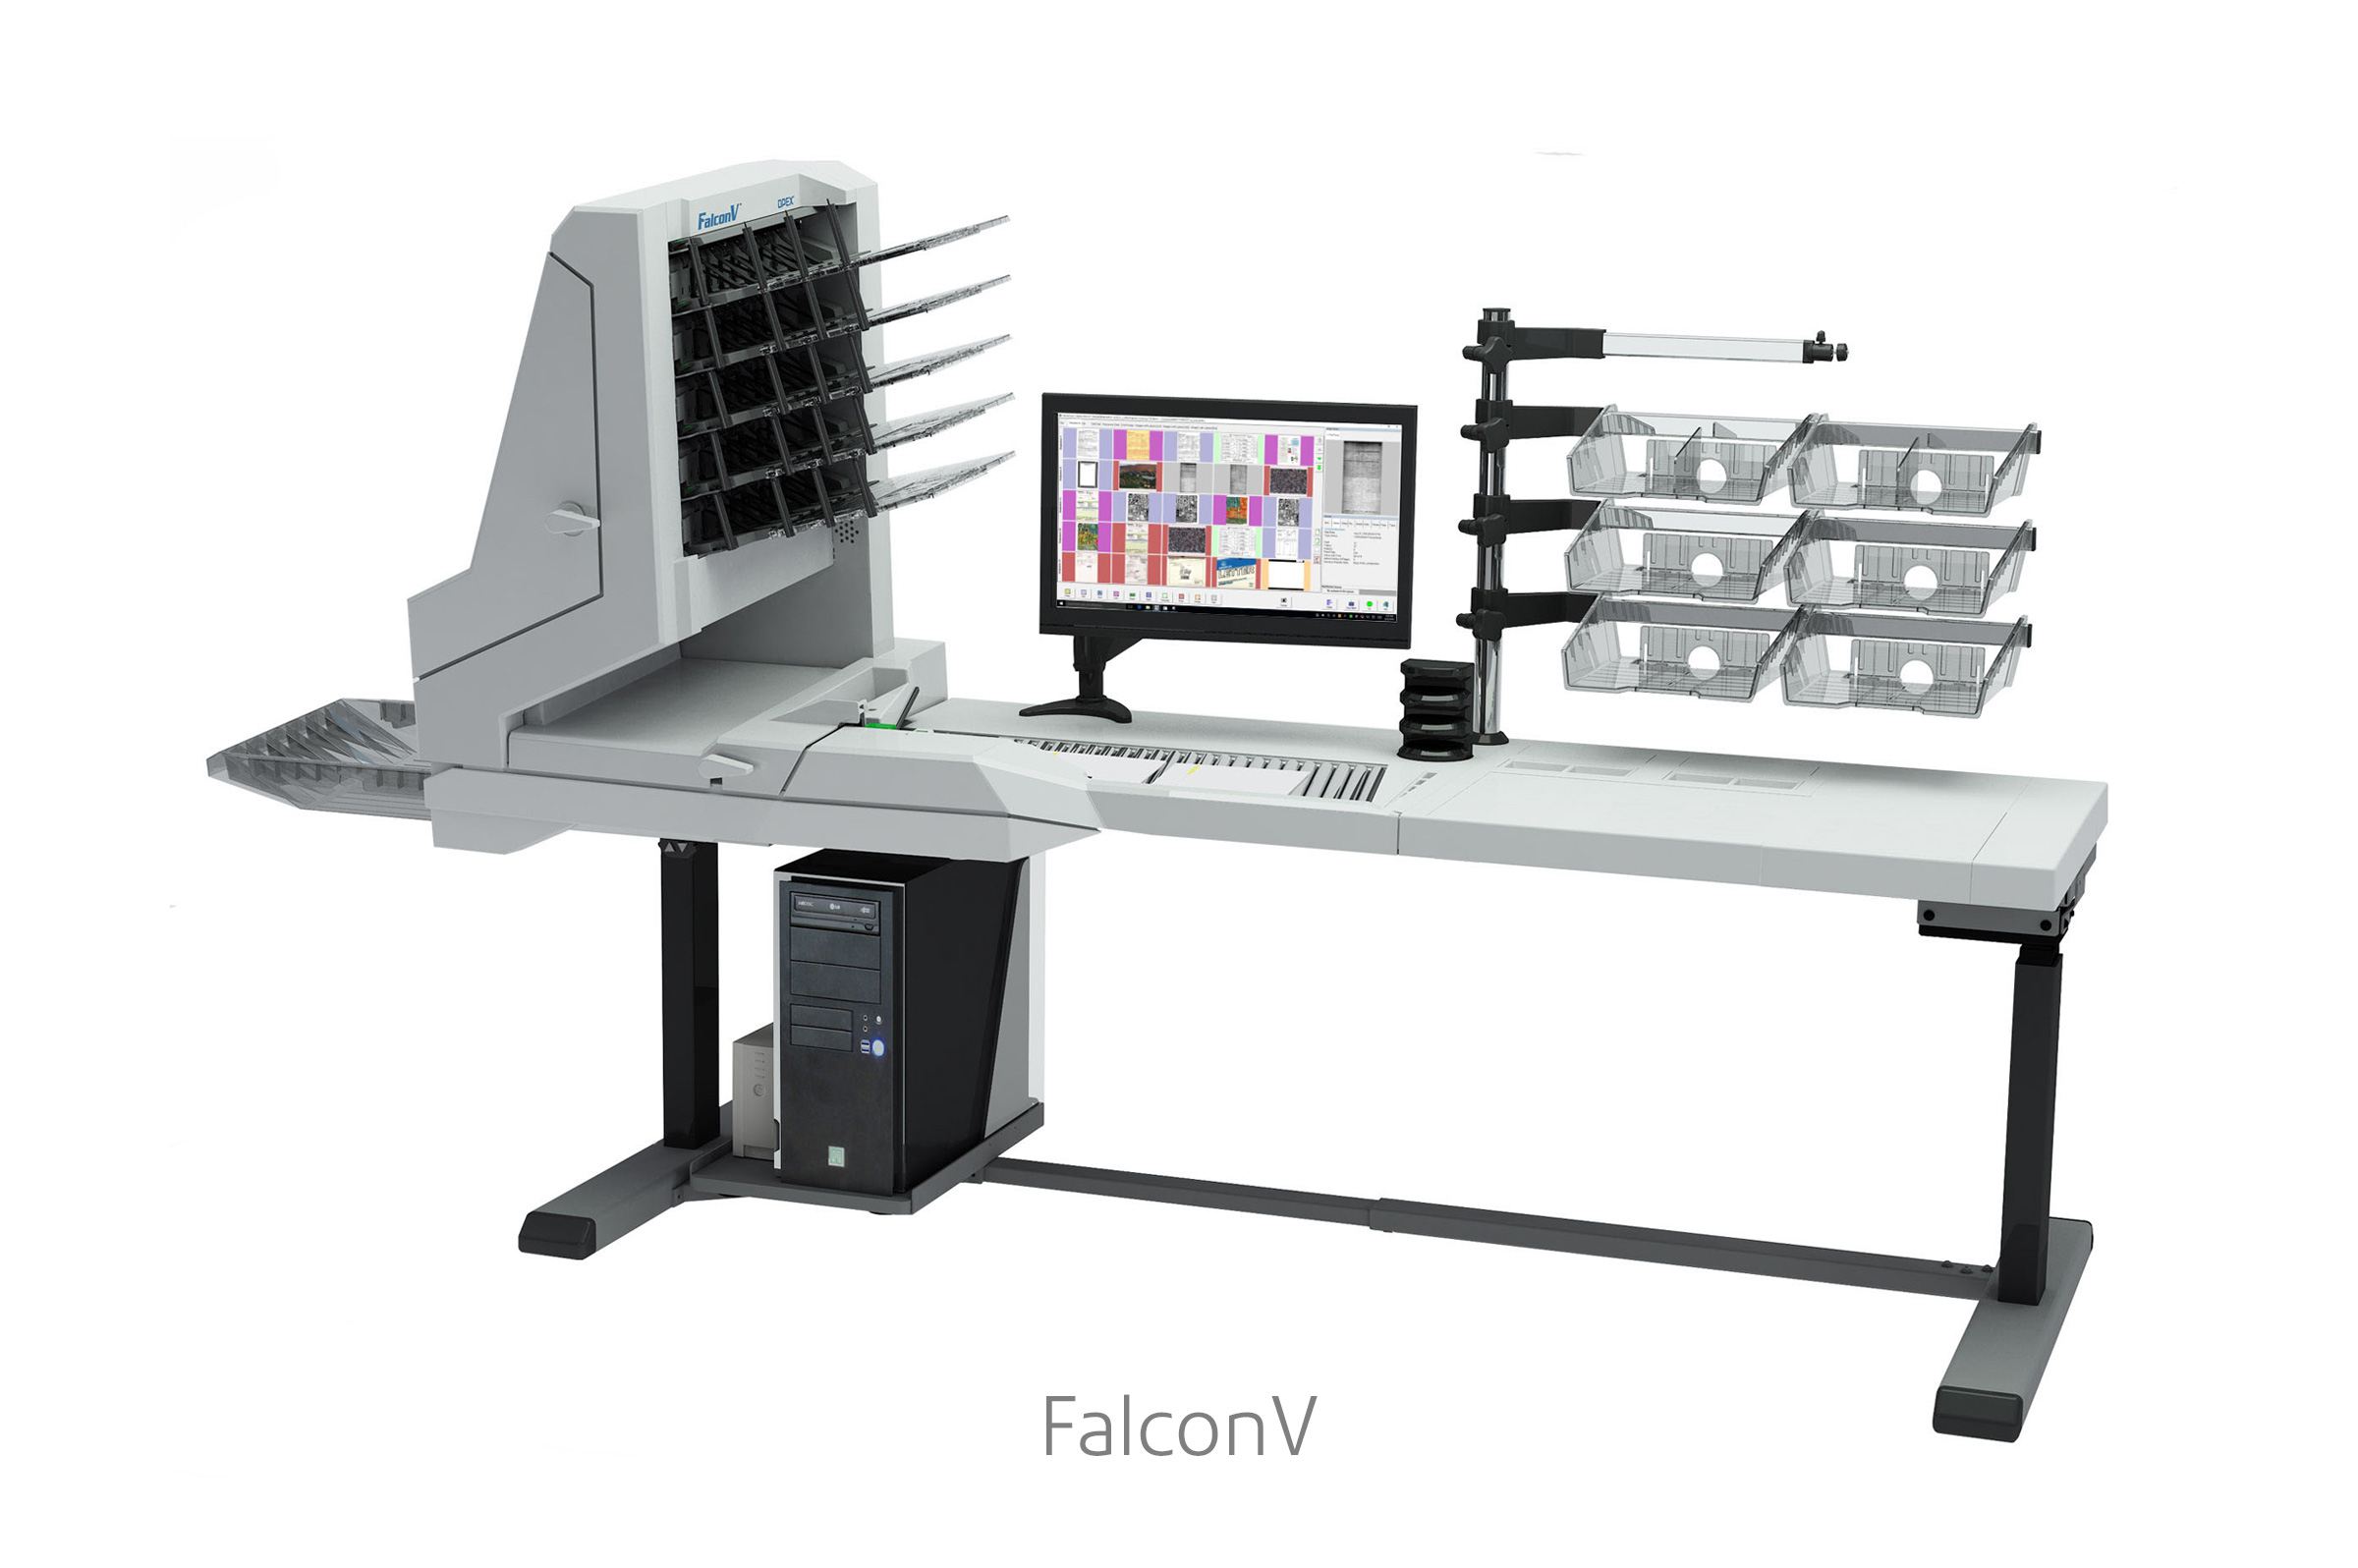 FalconV